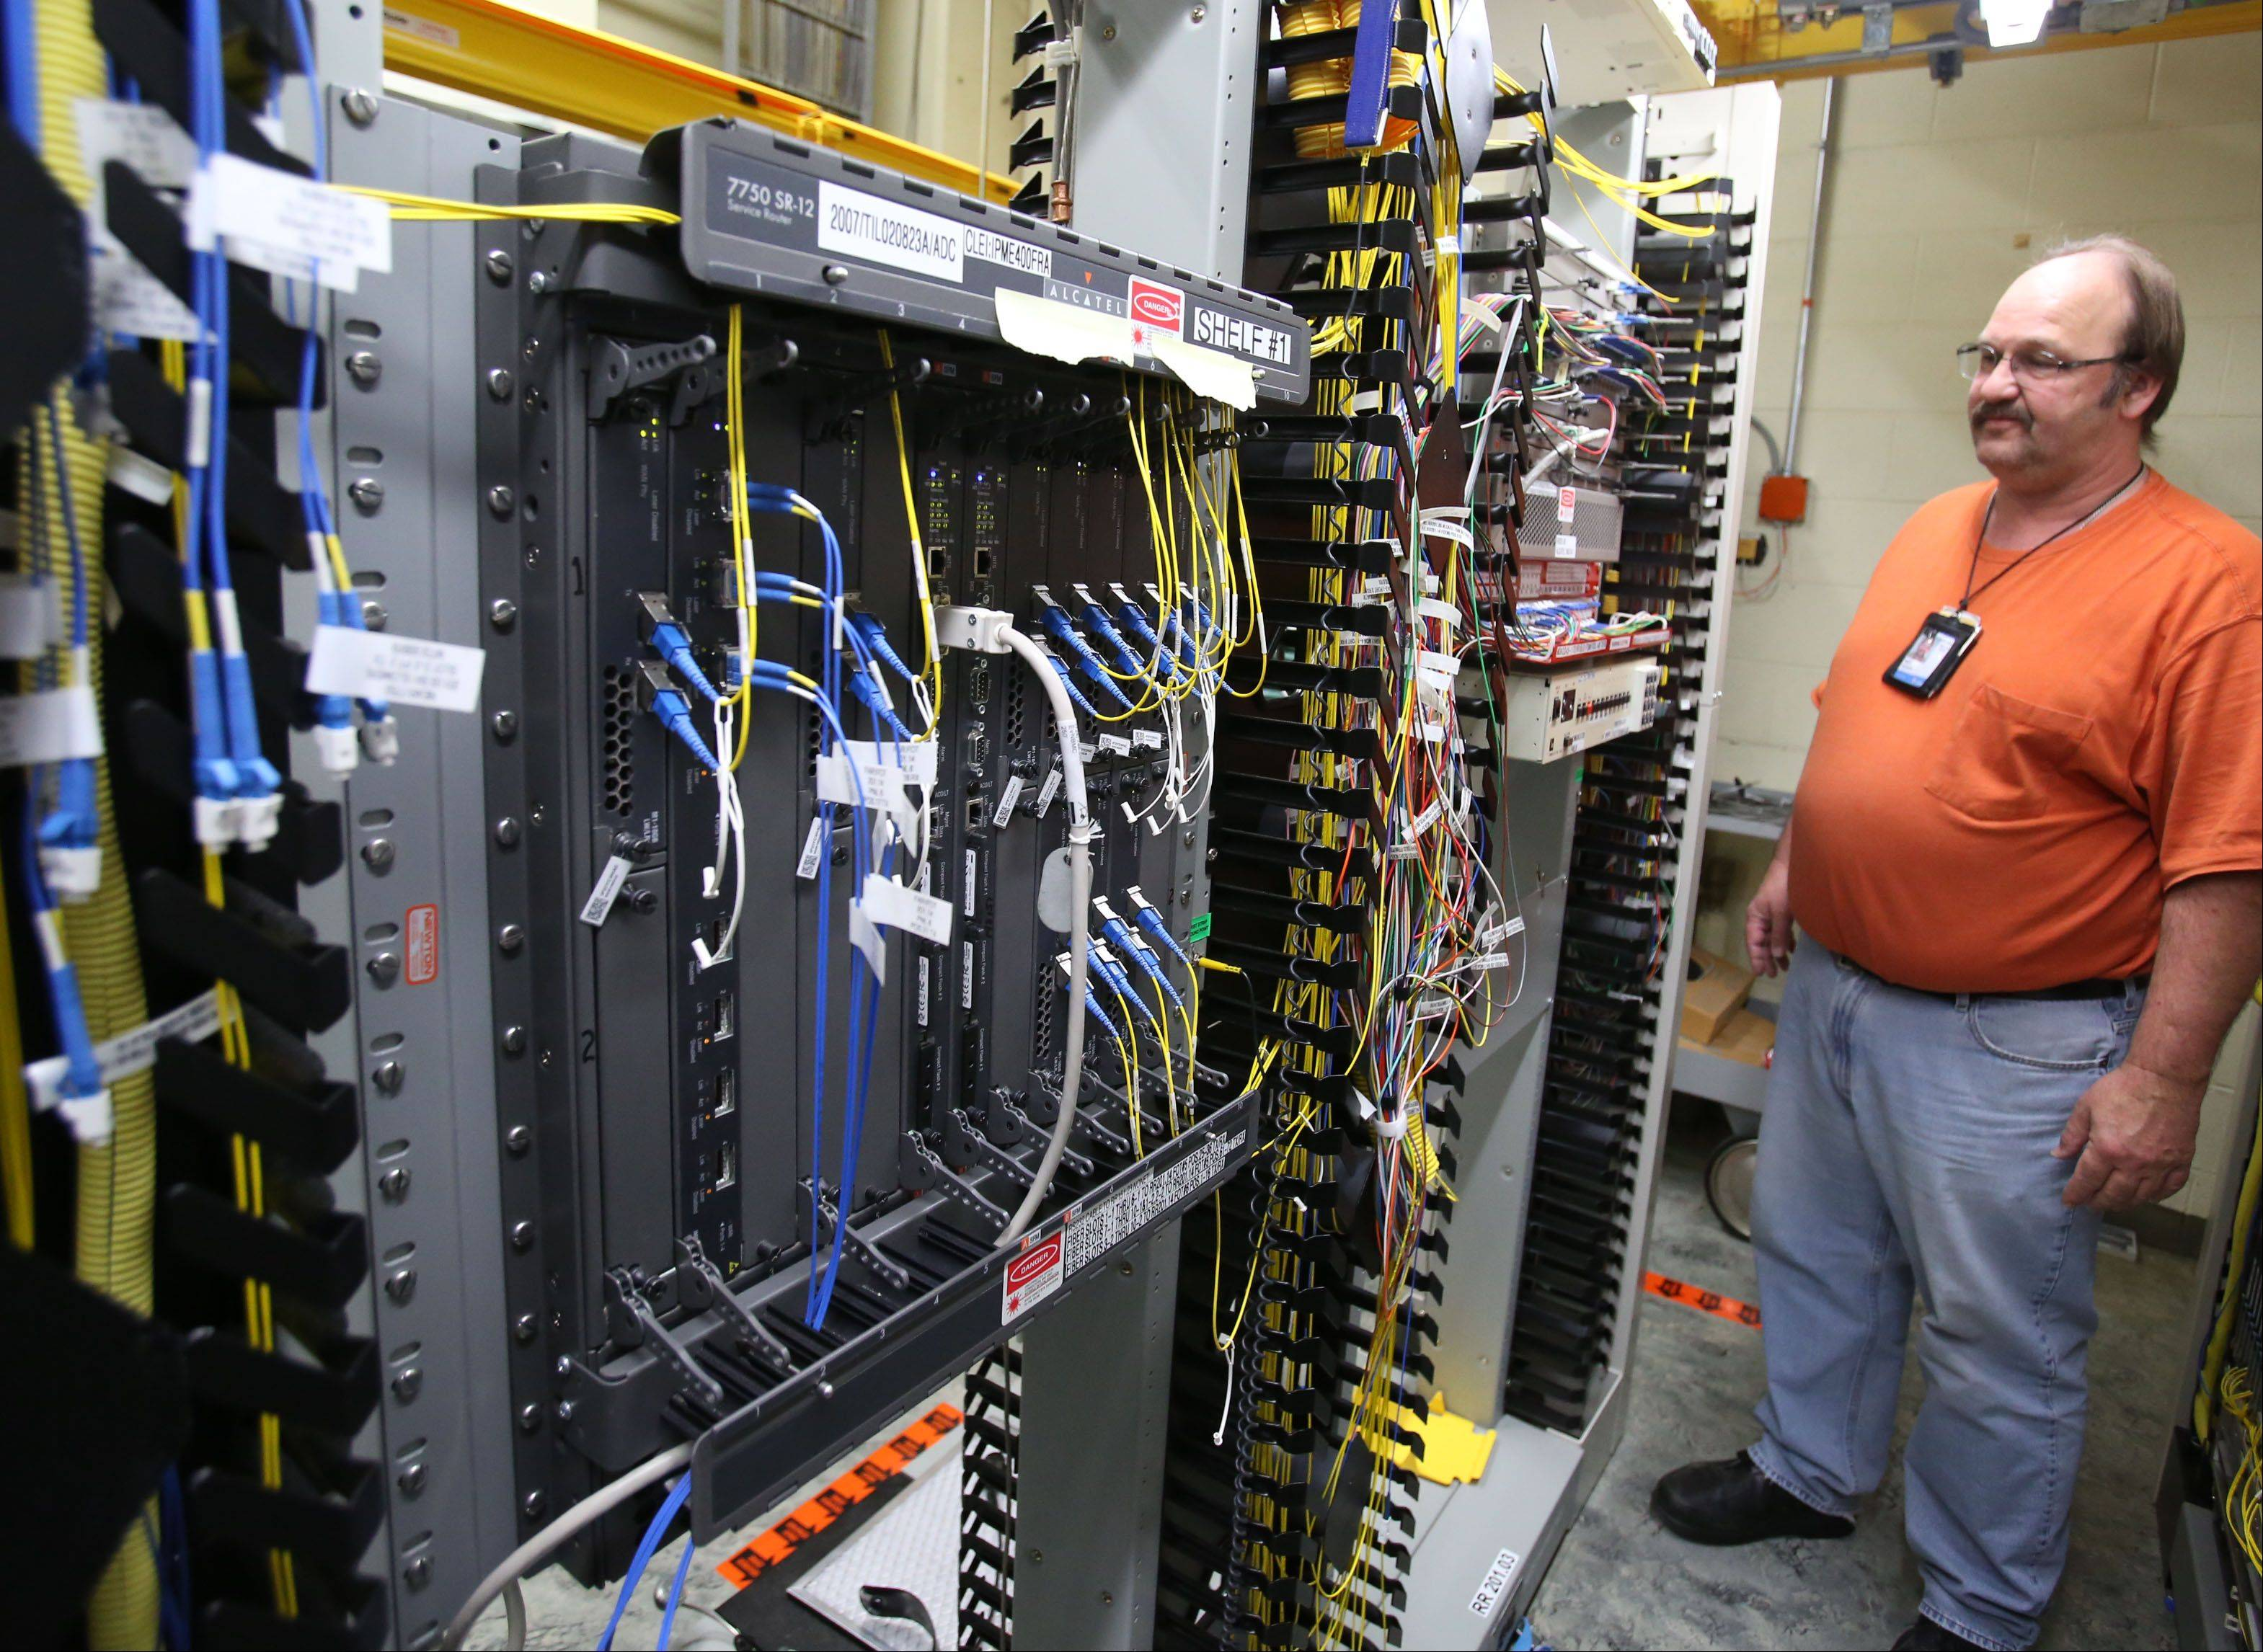 Guy Huttberg, a technician at AT&T Central Office in Barrington, is with new technology used for Internet protocol-based voice and video data on Thursday.